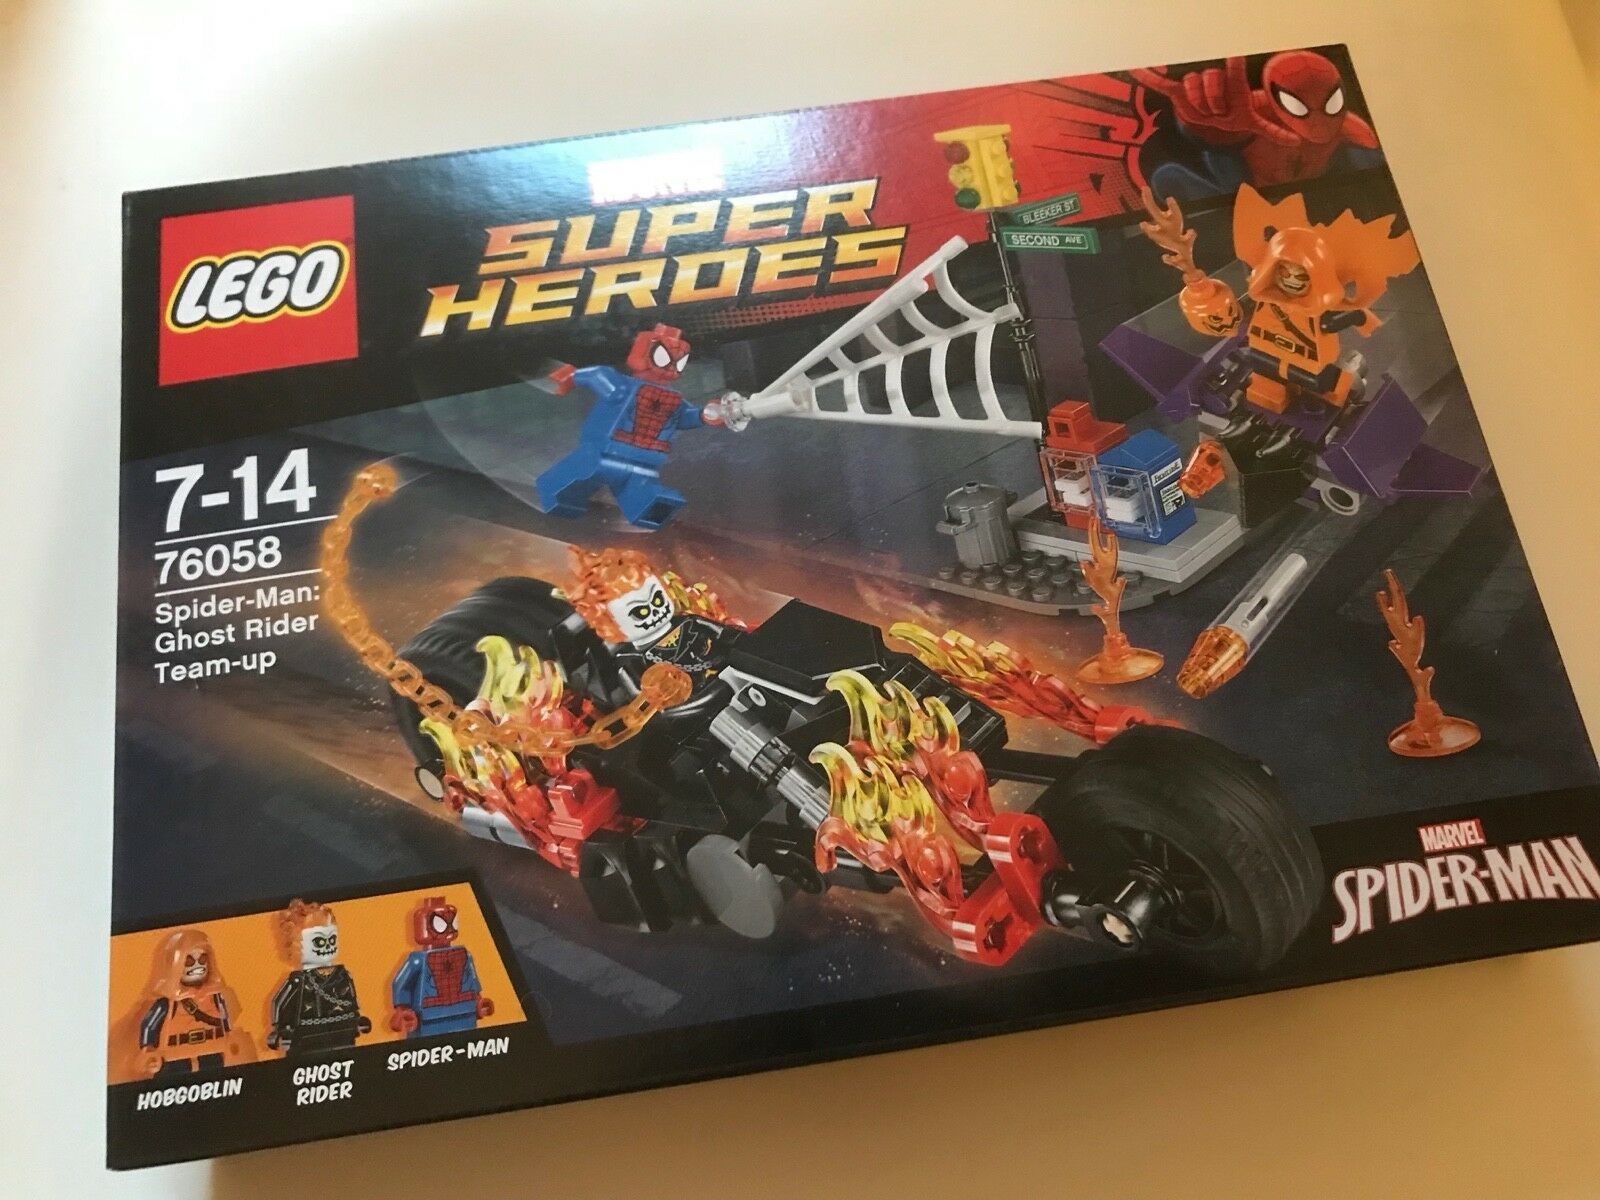 LEGO 76058 Super Heroes Spider-Man Ghost Rider Team-up - Brand New SEALED